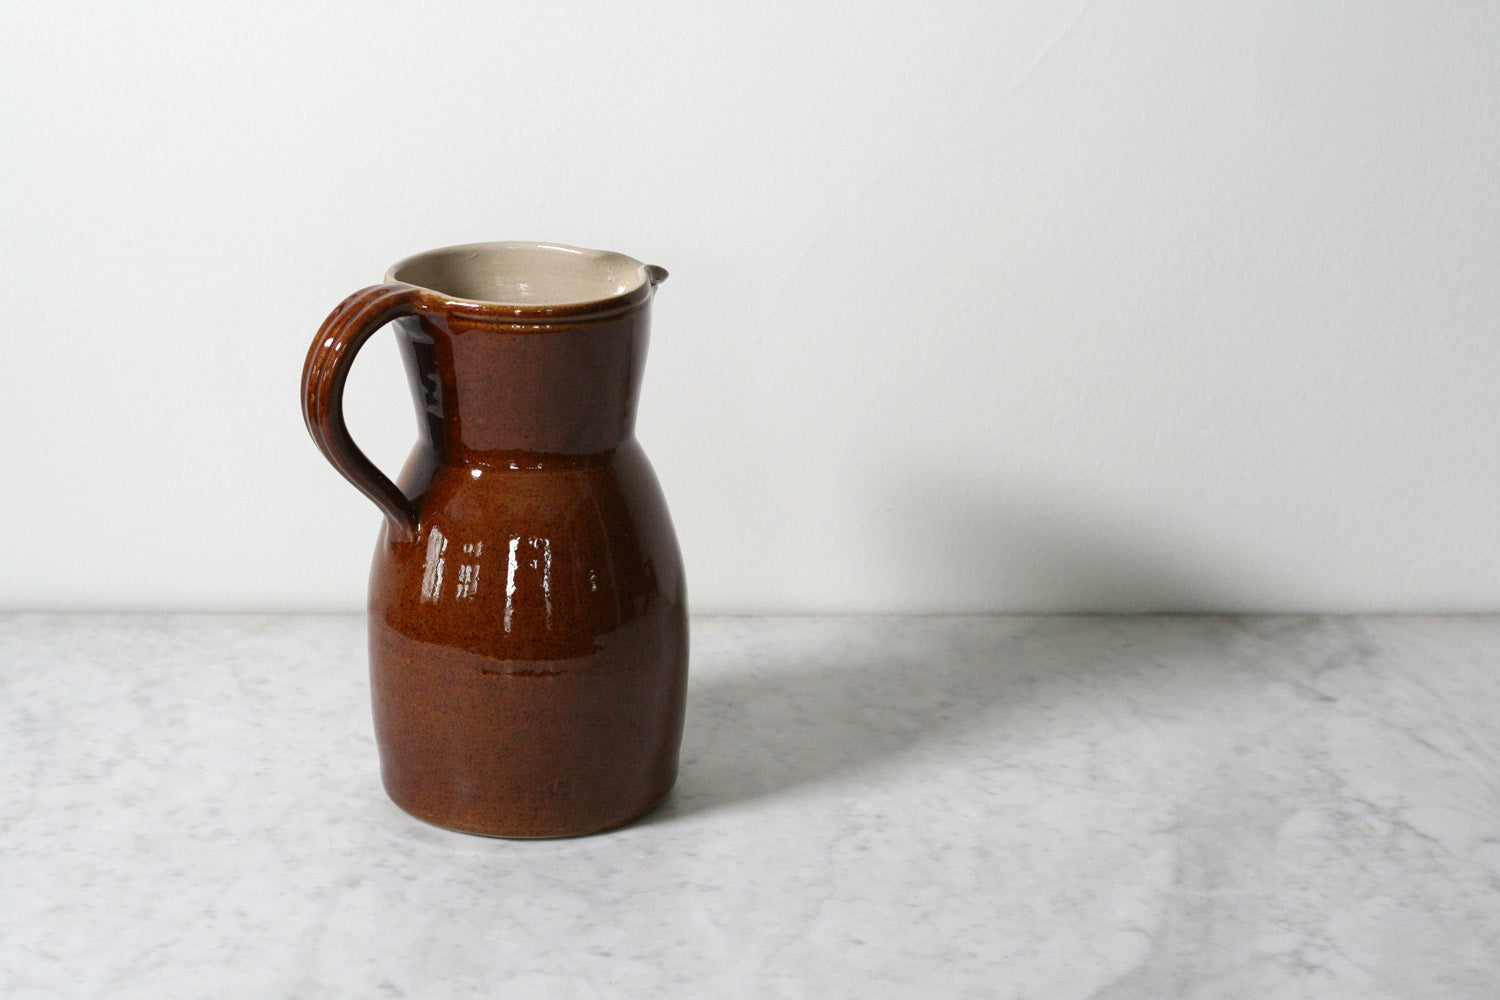 Poterie Renault French Stoneware Berry Pitcher